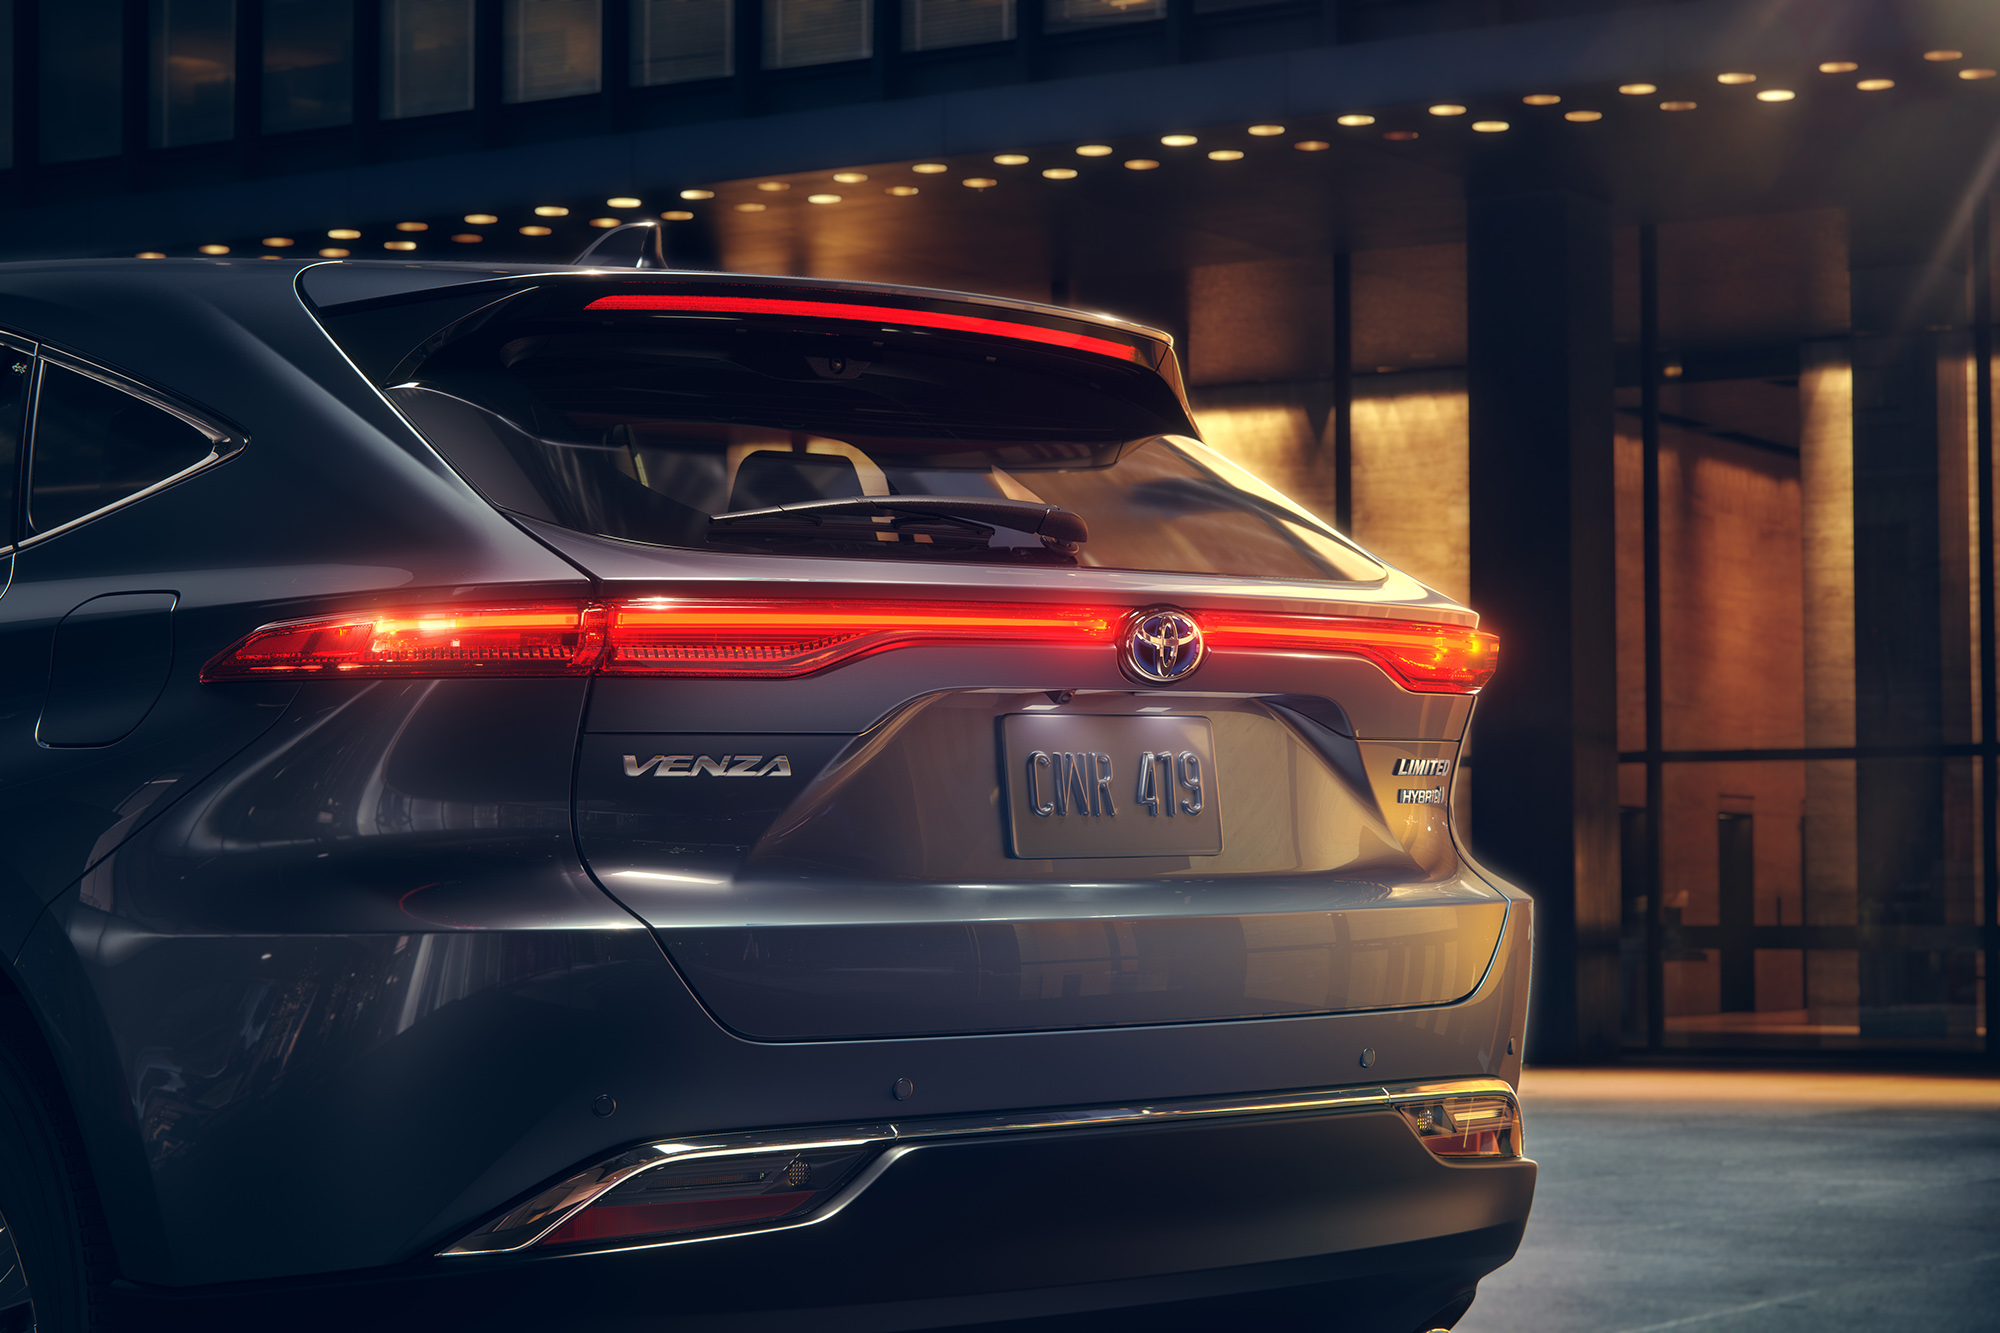 20-112_Toyota_Venza_15_rear_COMP06_AND_R4